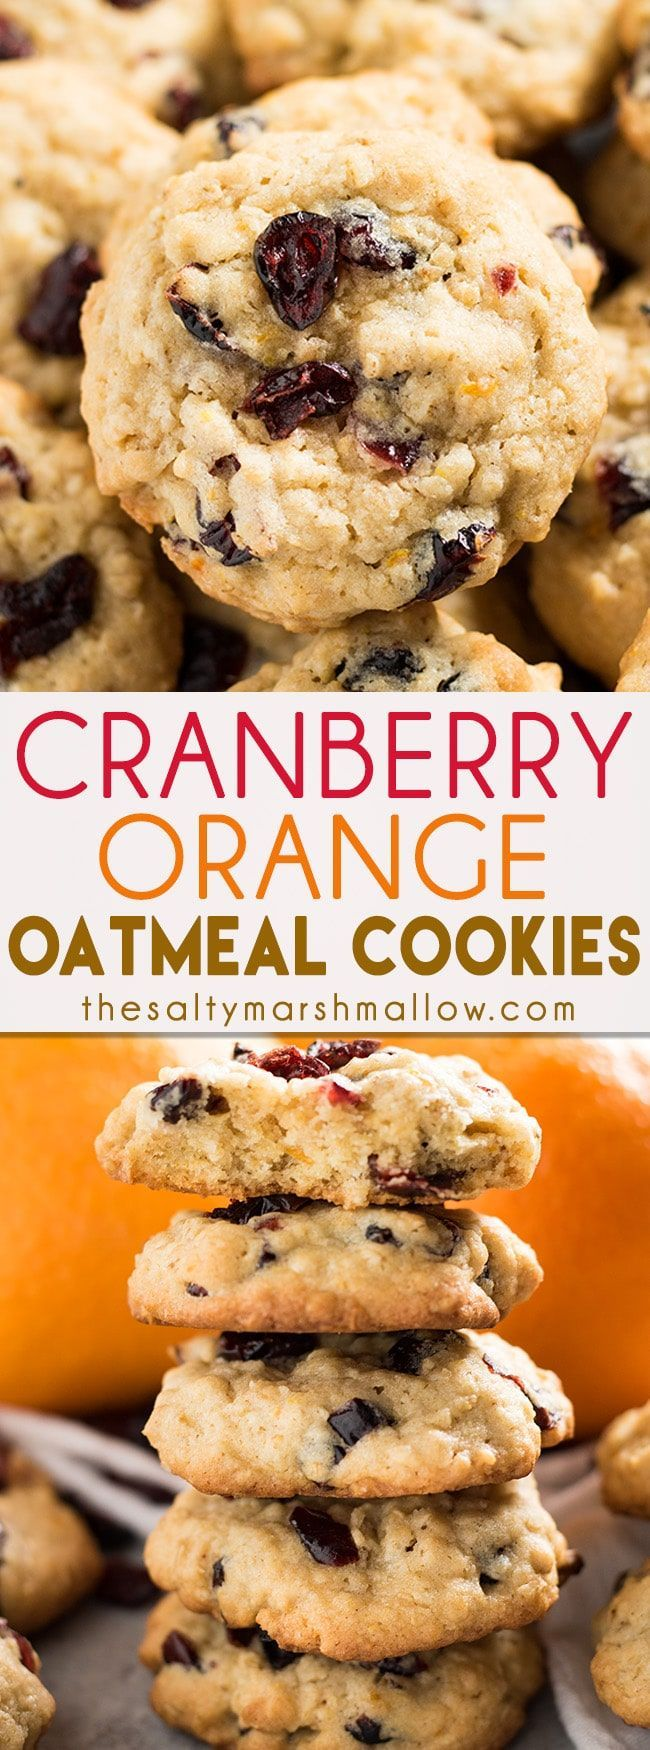 Cranberry Orange Oatmeal Cookies - These oatmeal cookies are thick and chewy, and soft in the middle! Packed full of dried cranberries and plenty of orange zest, these cookies are a fall and holiday favorite!